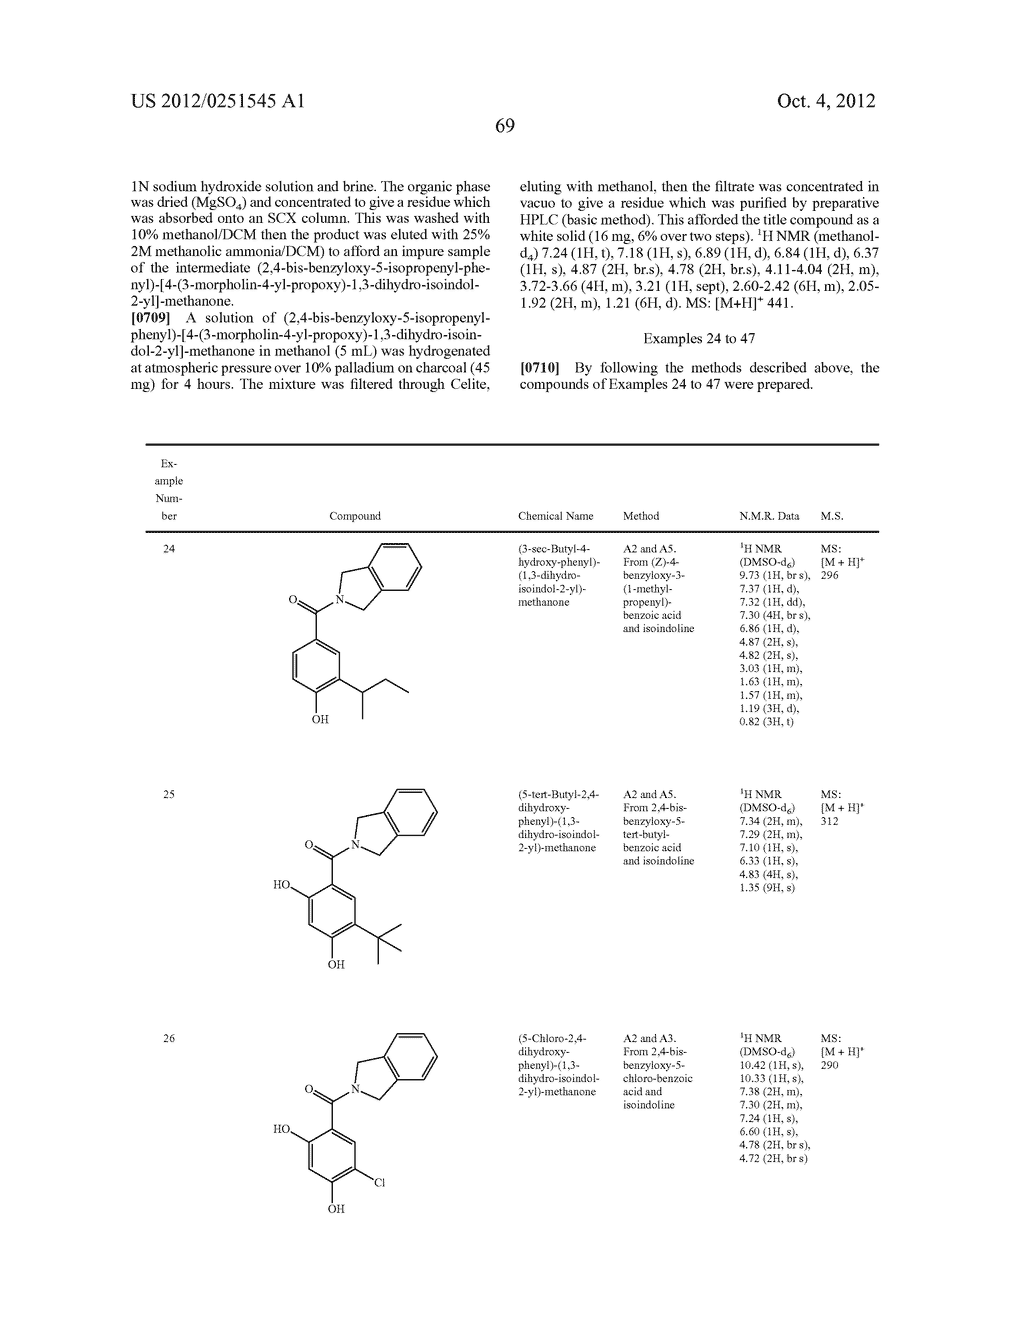 Therapeutic Combinations Of Hydroxybenzamide Derivatives As Inhibitors Of     HSP90 - diagram, schematic, and image 70